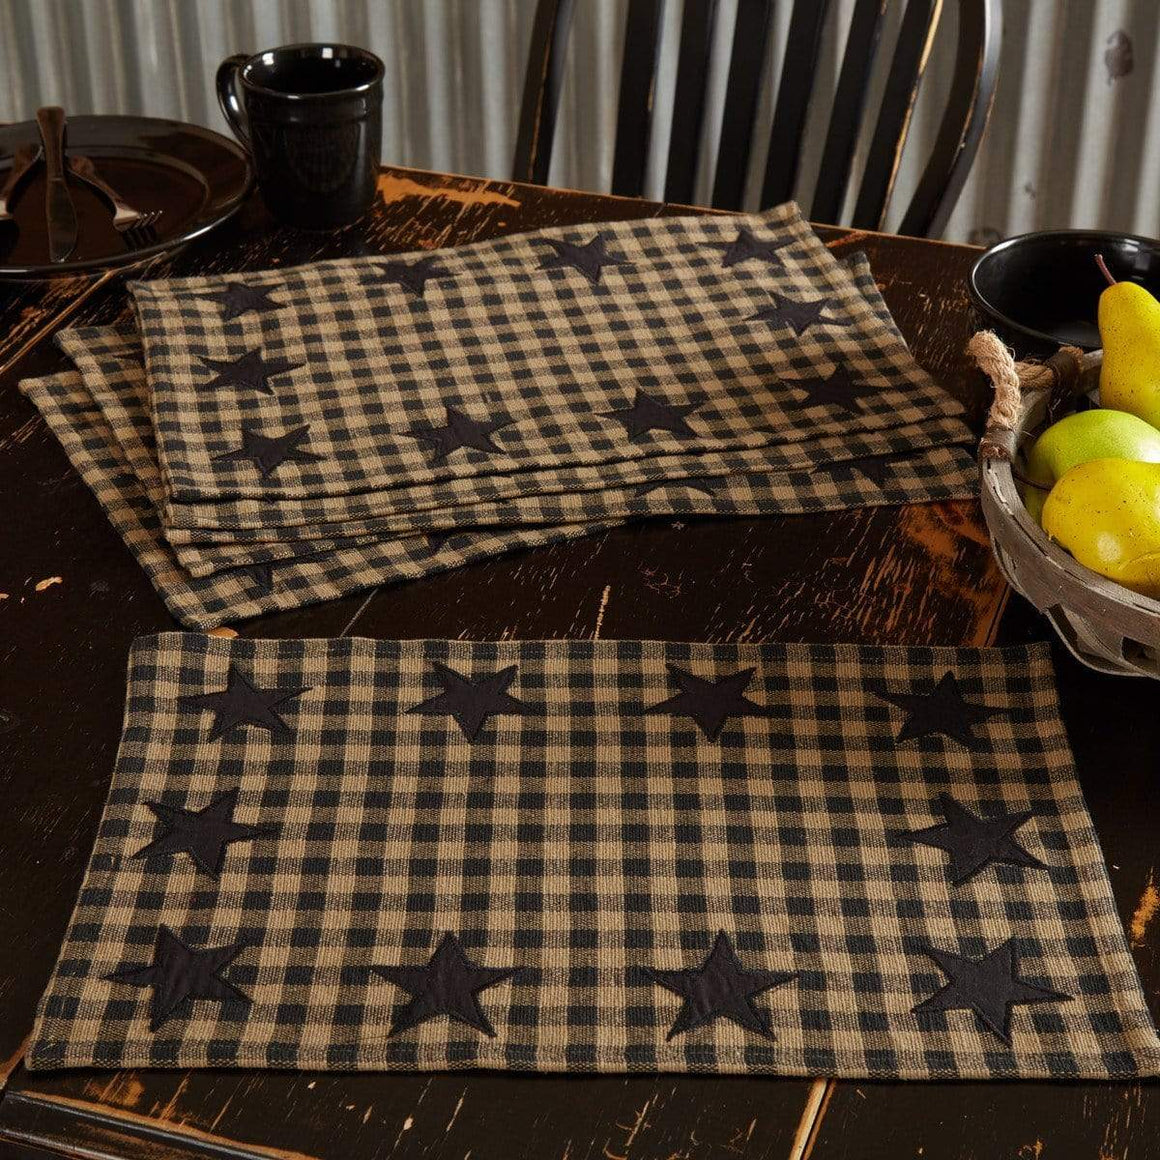 Black Star Placemat Set of 6